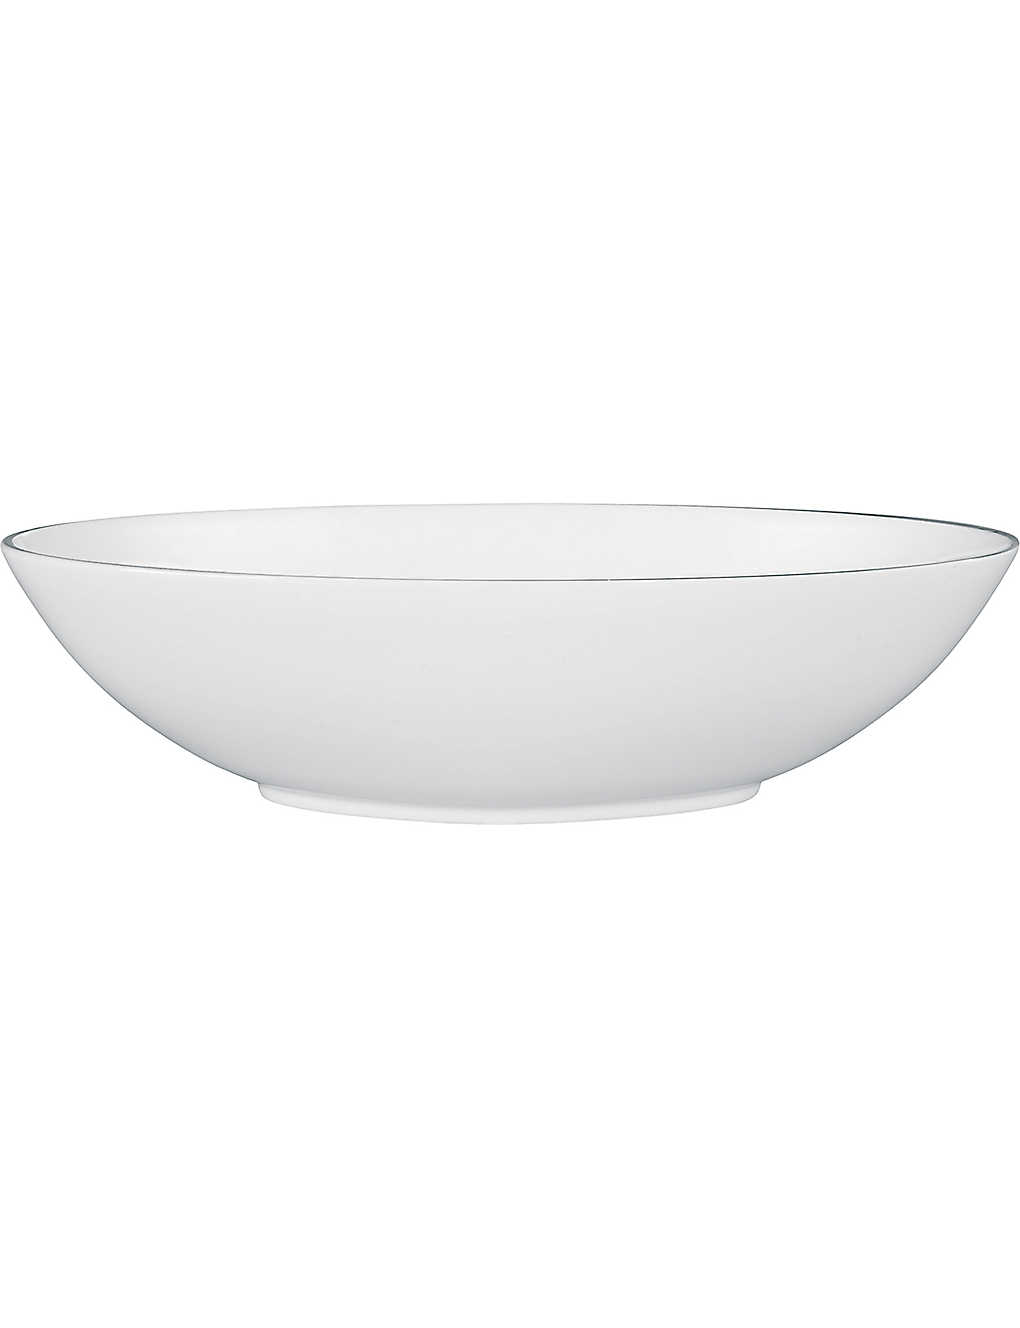 JASPER CONRAN @ WEDGWOOD: Platinum serving oval bowl